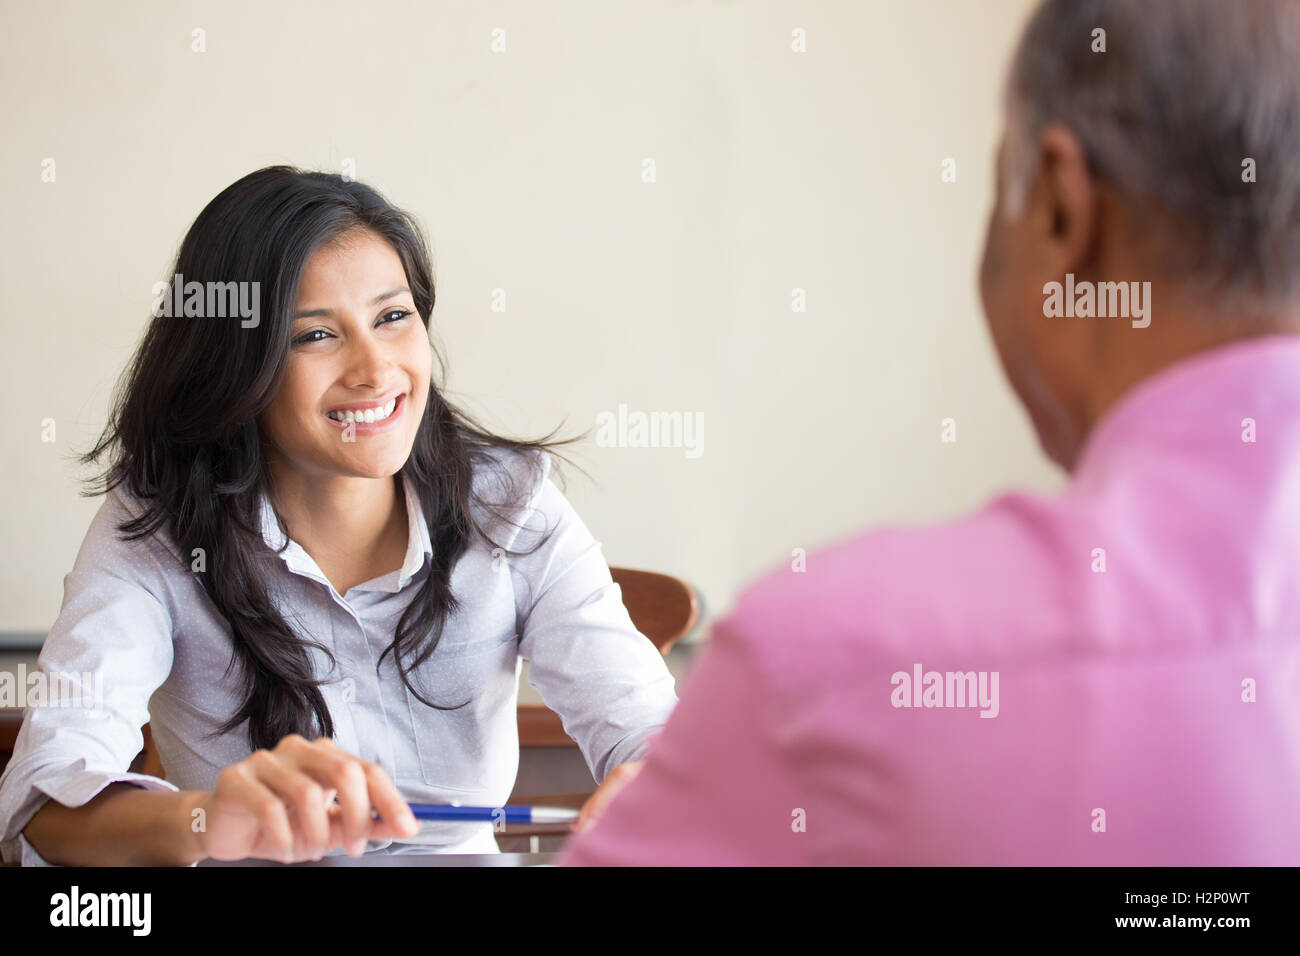 Closeup portrait, appointment with office manager, job interview, hiring, isolated indoors office background. Getting - Stock Image